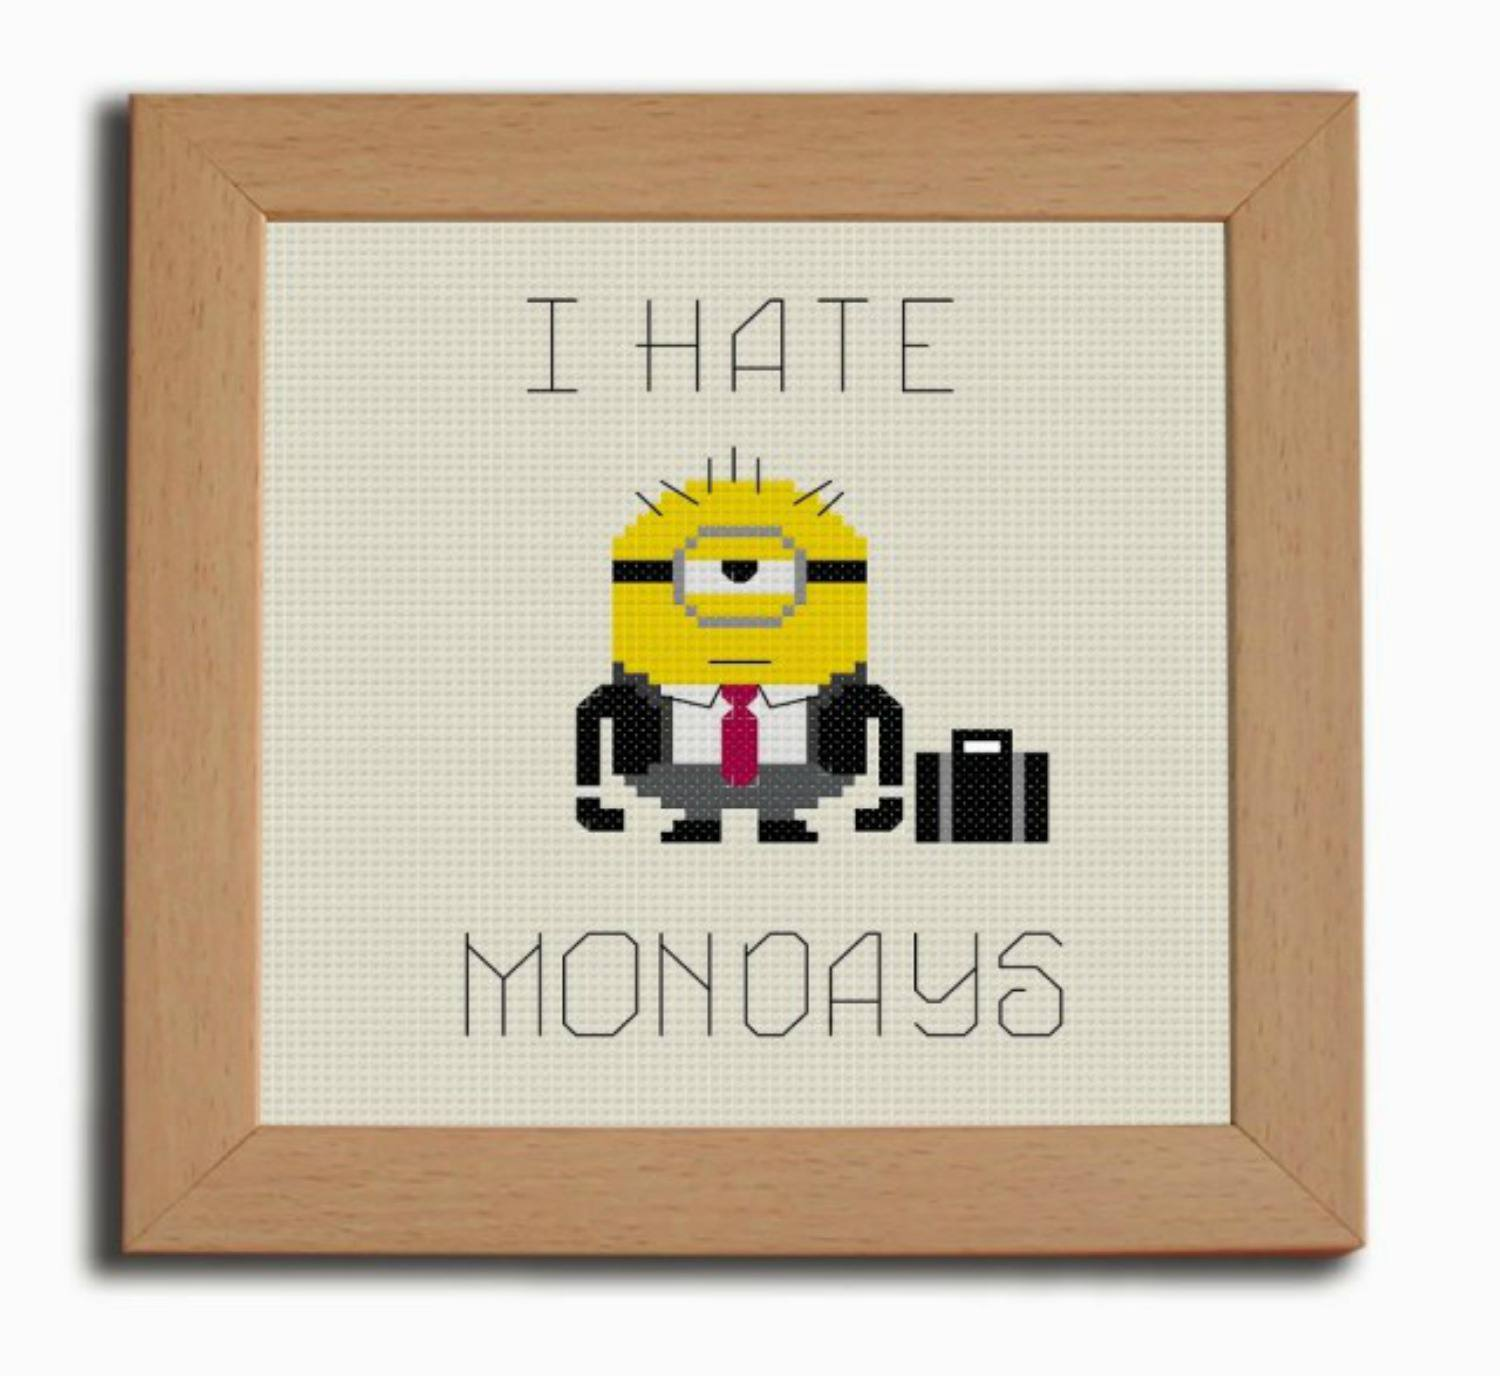 6 Work and Office Inspired Cross Stitch Patterns